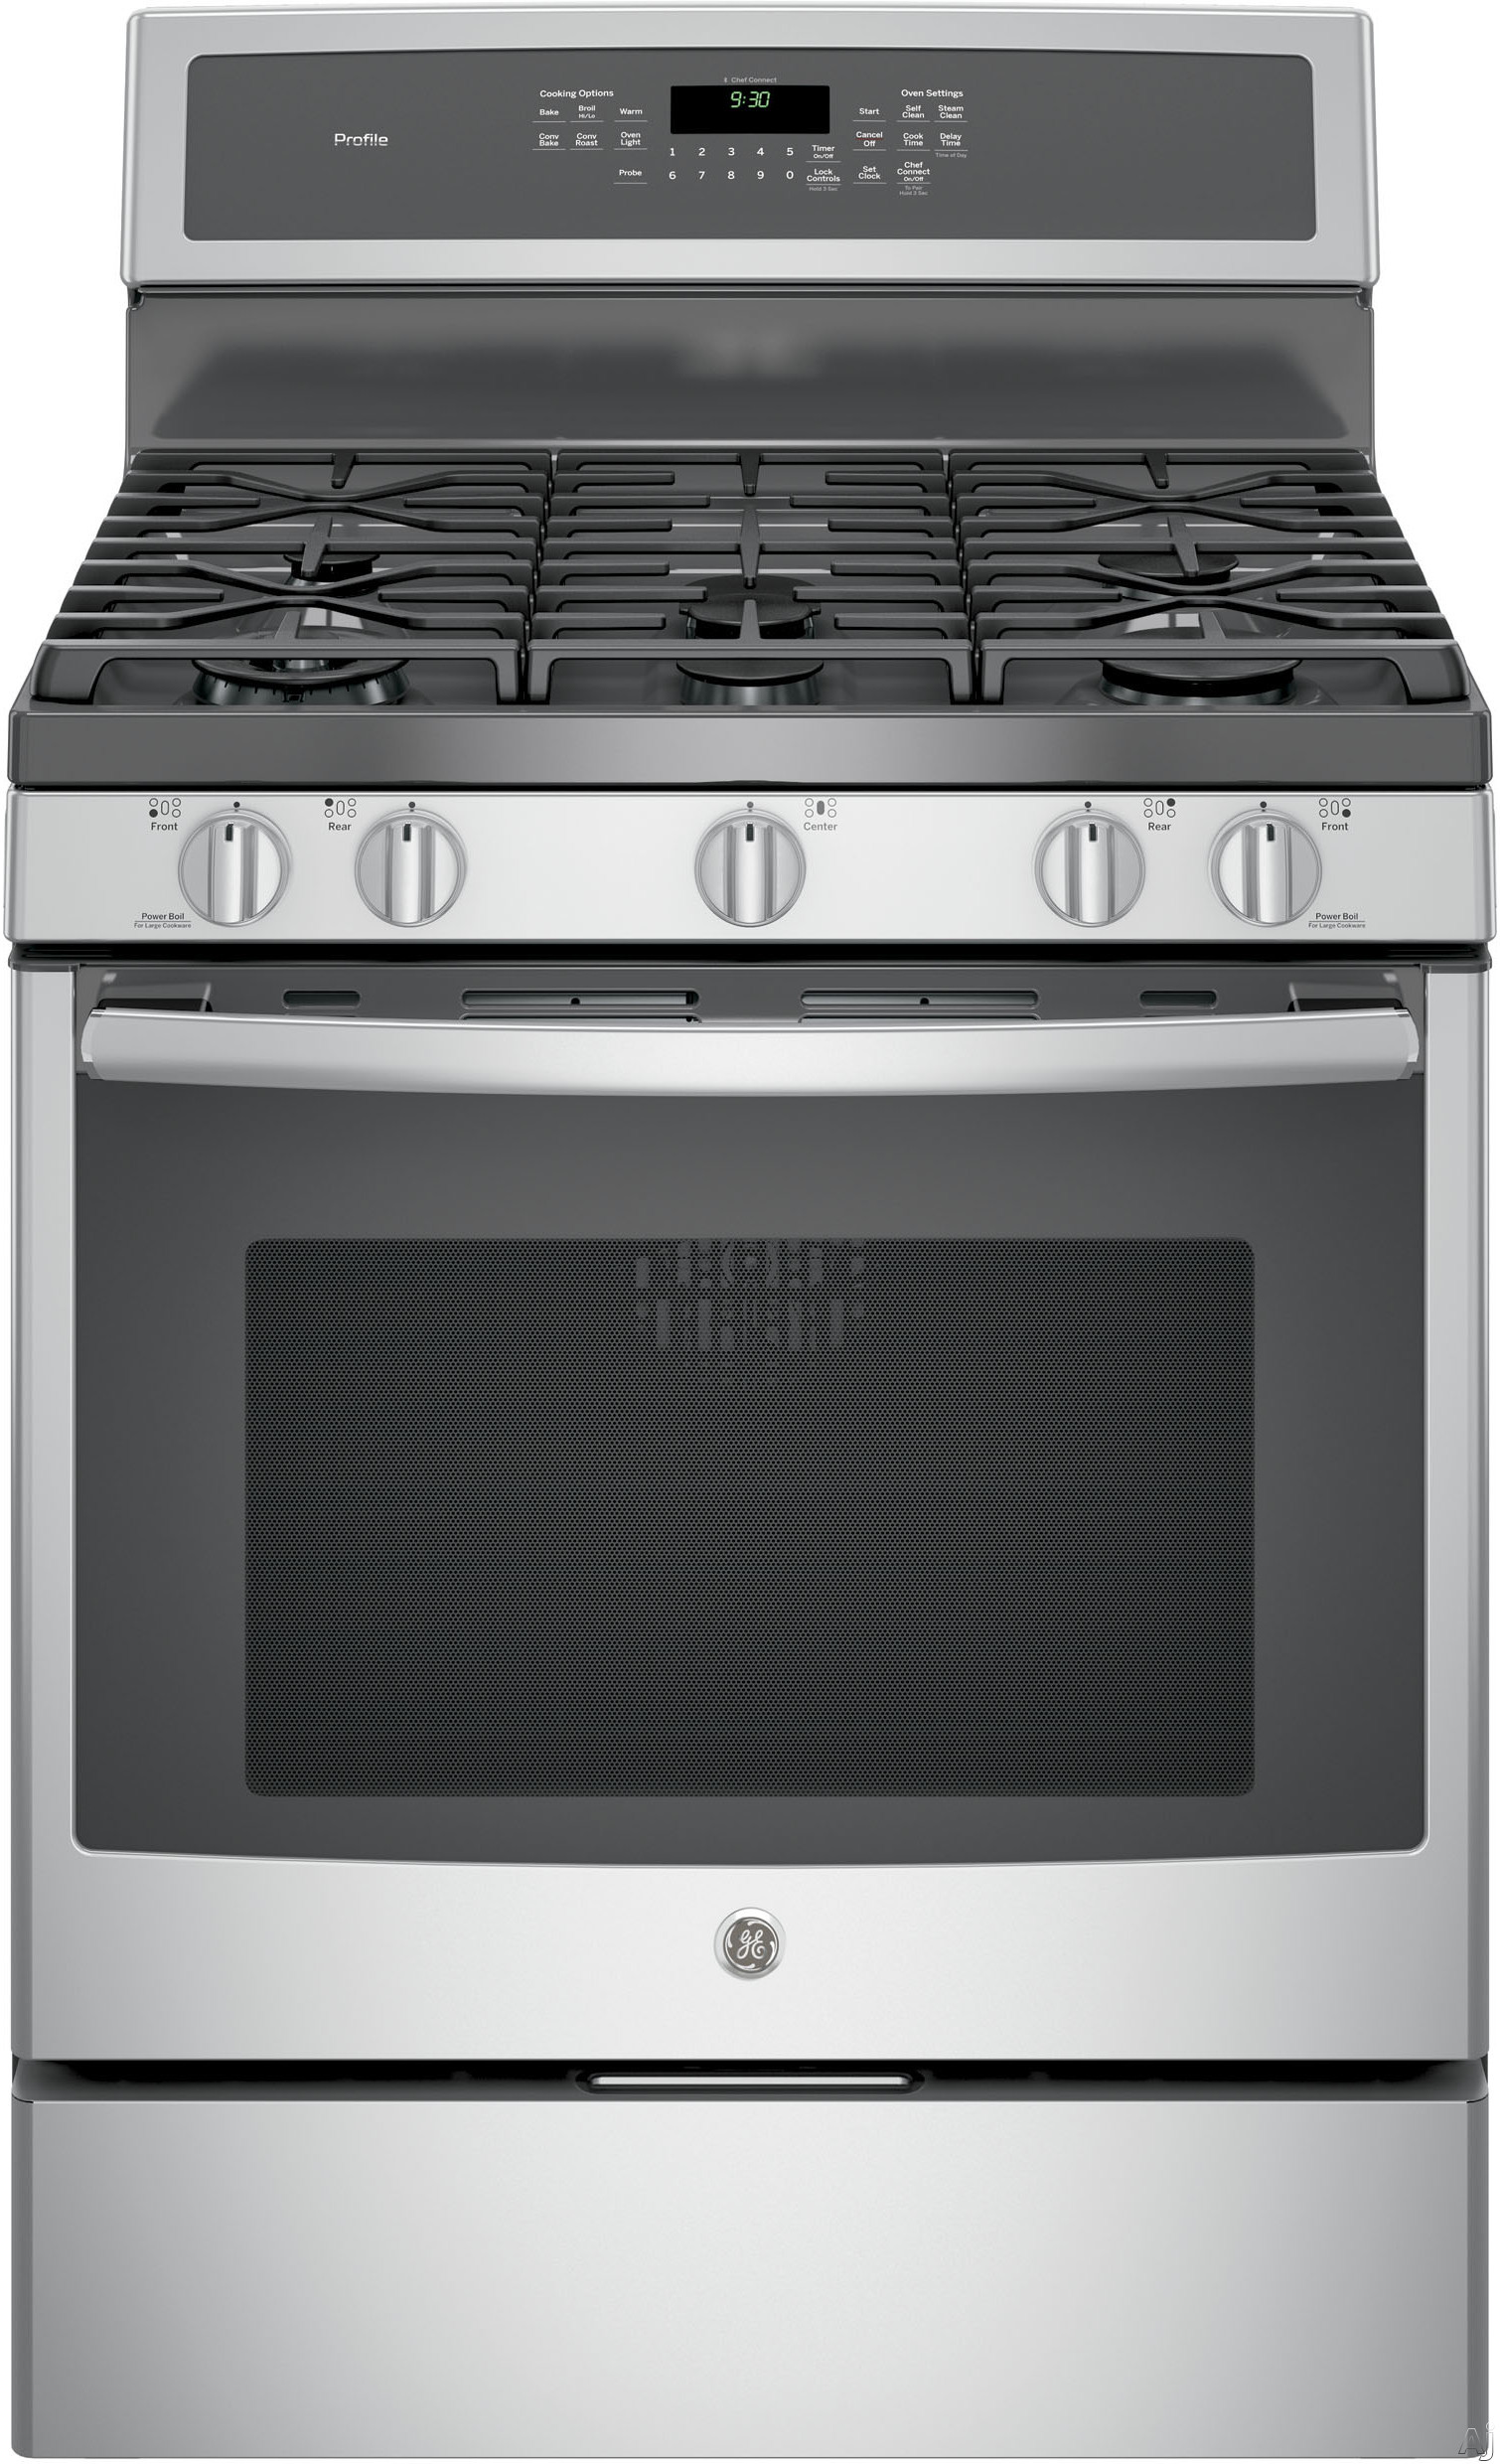 30 gas cooktop reviews  ge profile series 30 u0026quot  built in gas downdraft cooktop   the best 30 inch